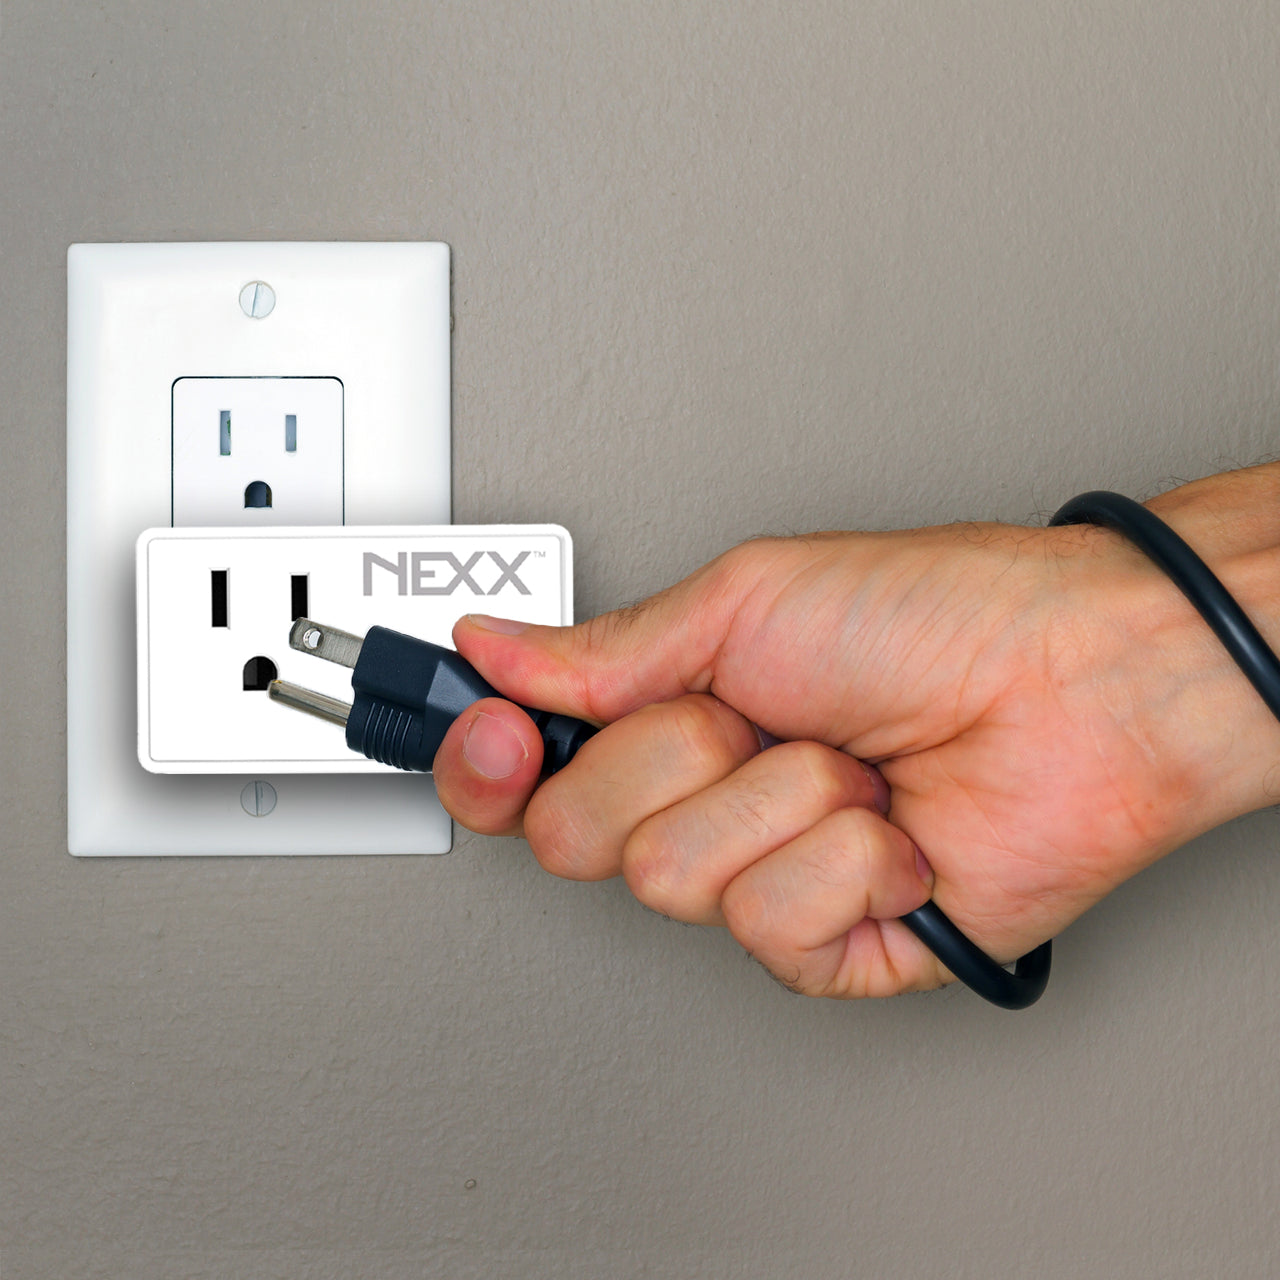 nexx plug smart wifi socket US standard remote control devices